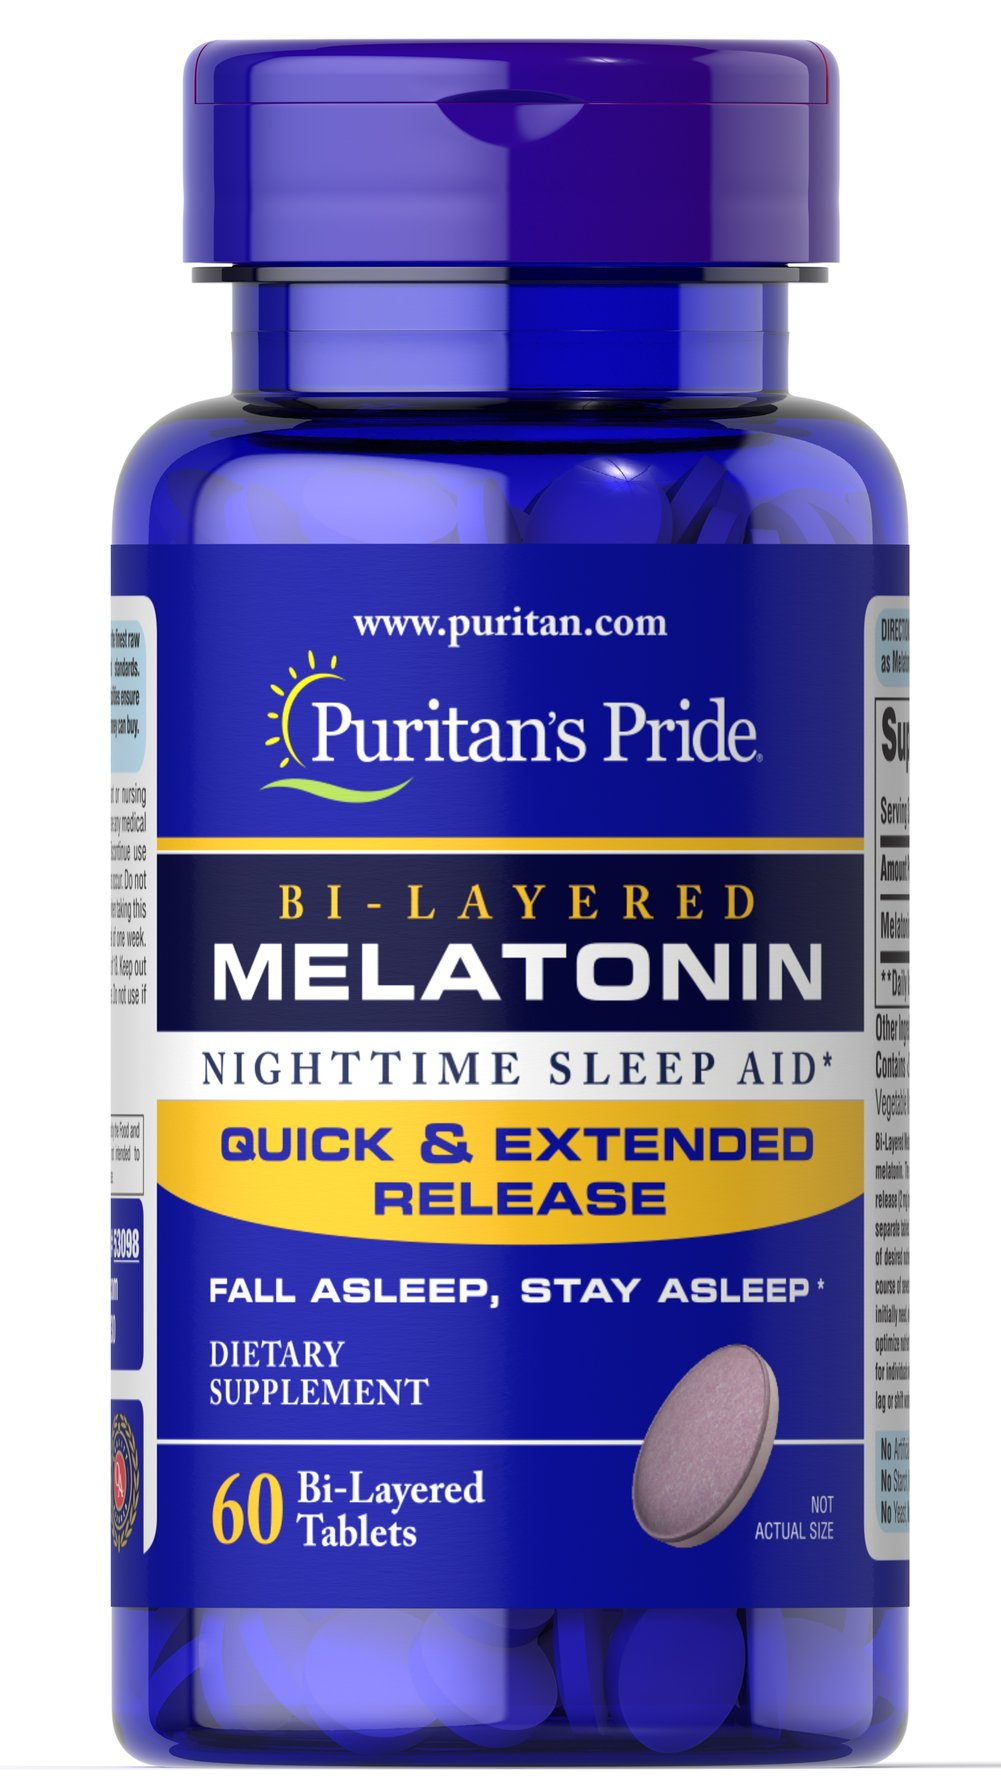 Bi-Layered Melatonin 5 mg  60 Tablets 5 mg $9.99